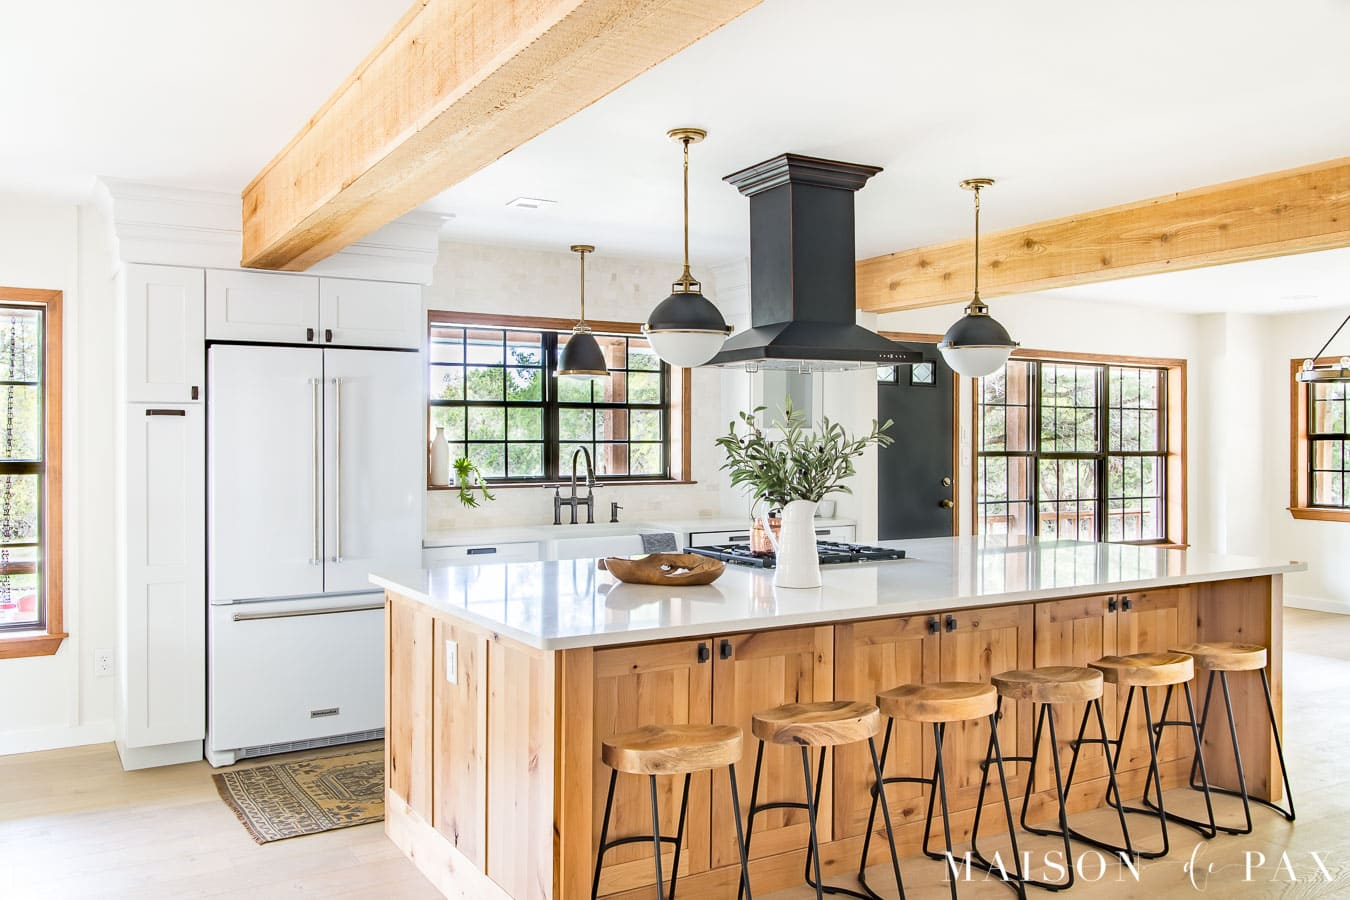 black framed windows in open kitchen with white walls and large wood island and wood beams | Maison de Pax